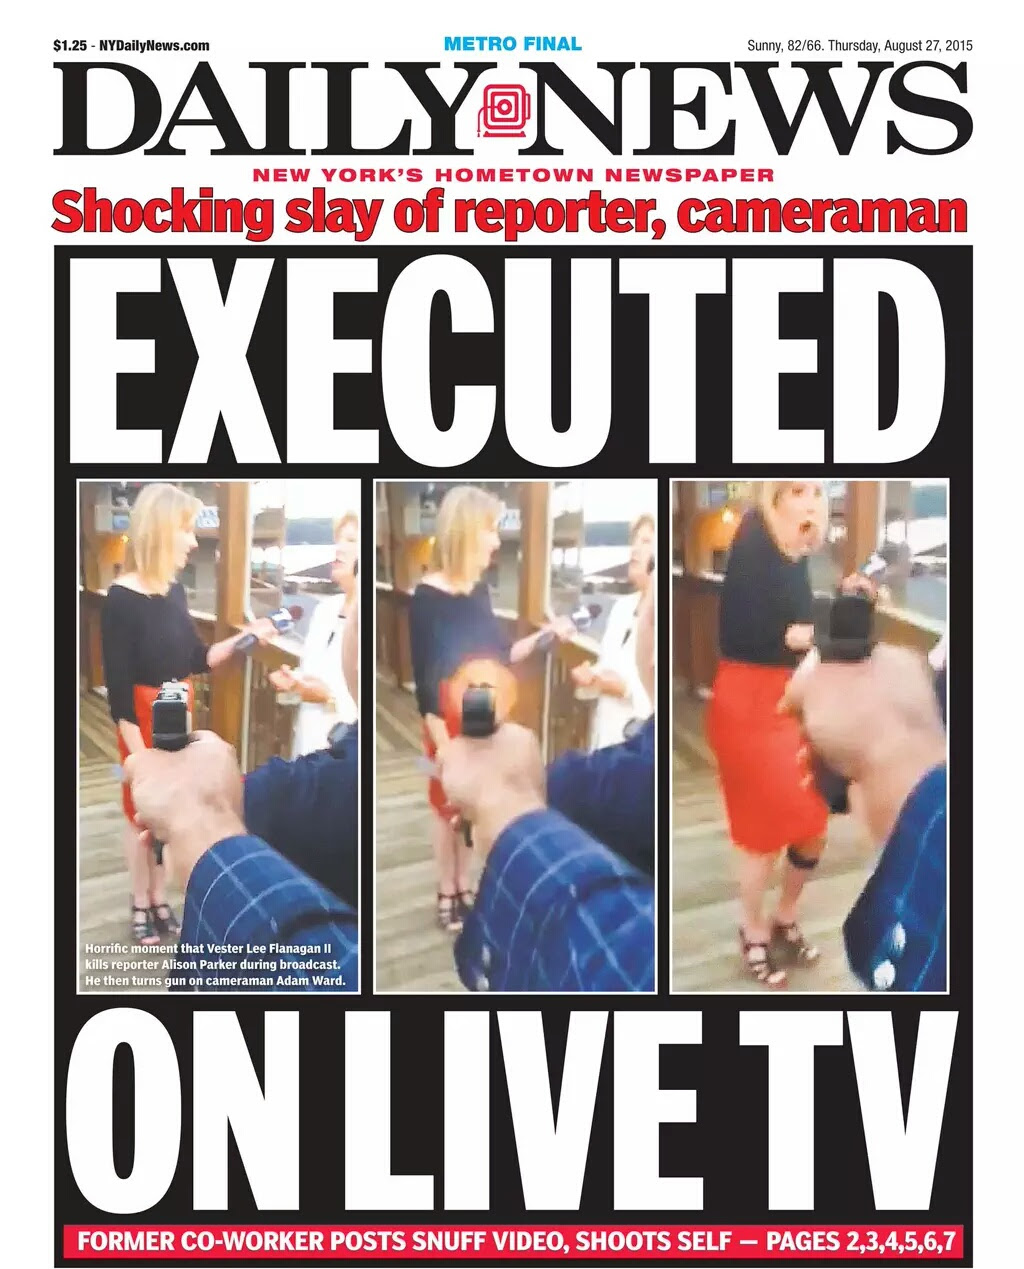 Daily News Front Page for Today 8/27/15 - Imgur